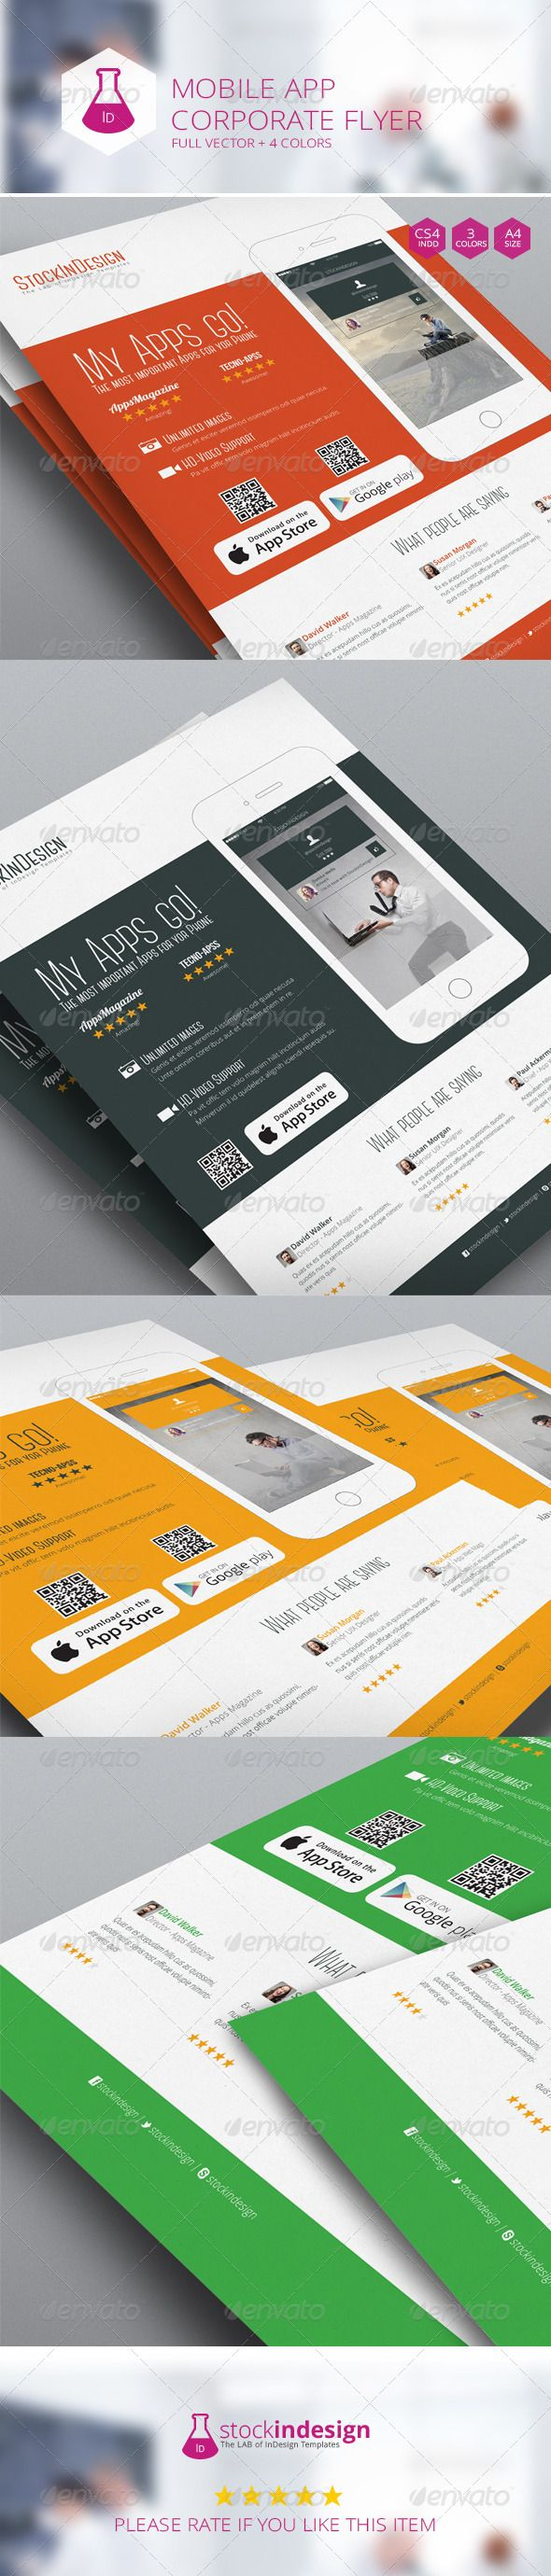 Mobile App Flyer - Flat Design